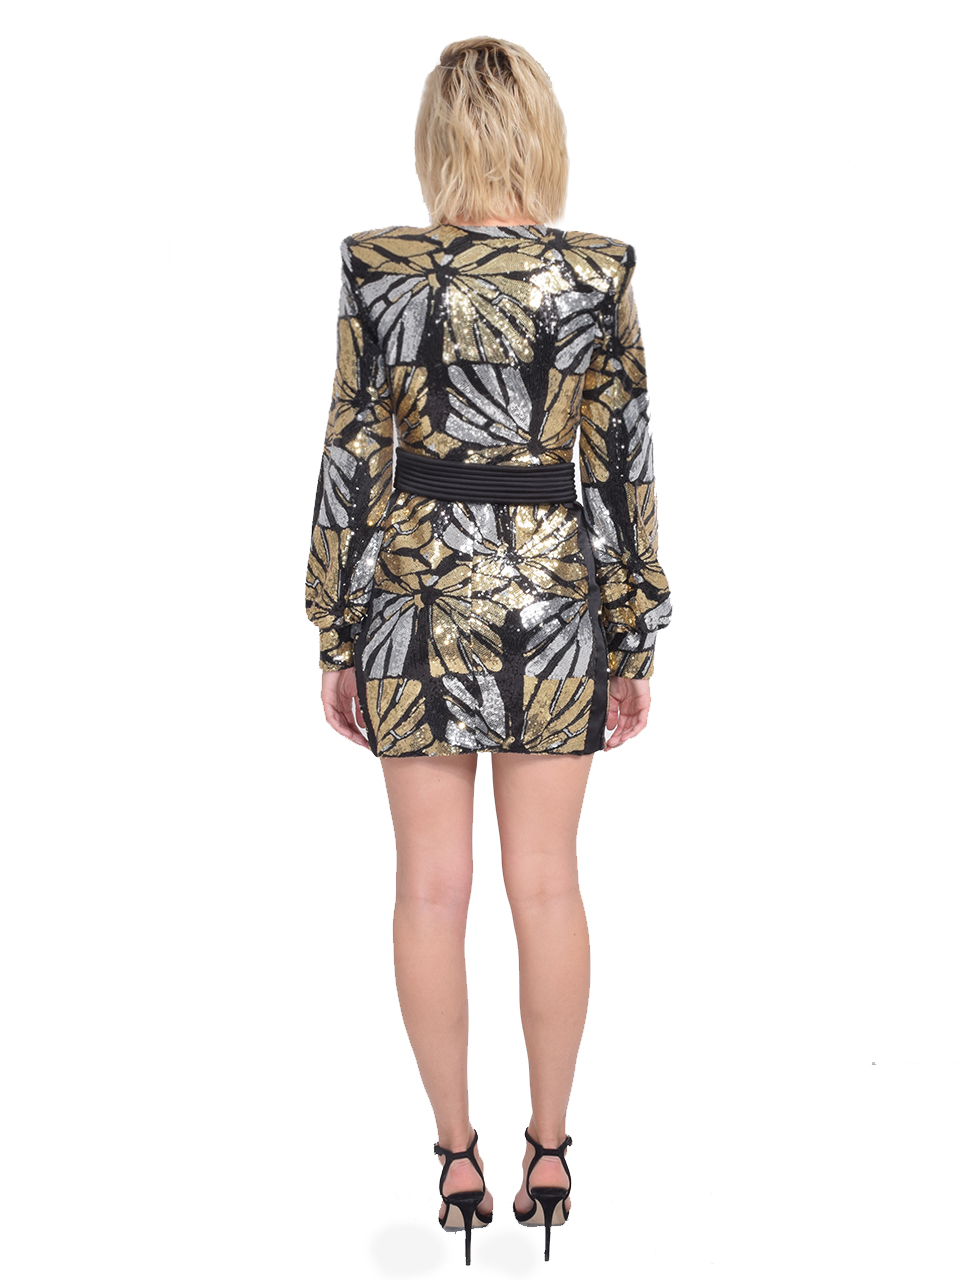 Zhivago Bringing Up Baby Dress in Black/Gold Back View